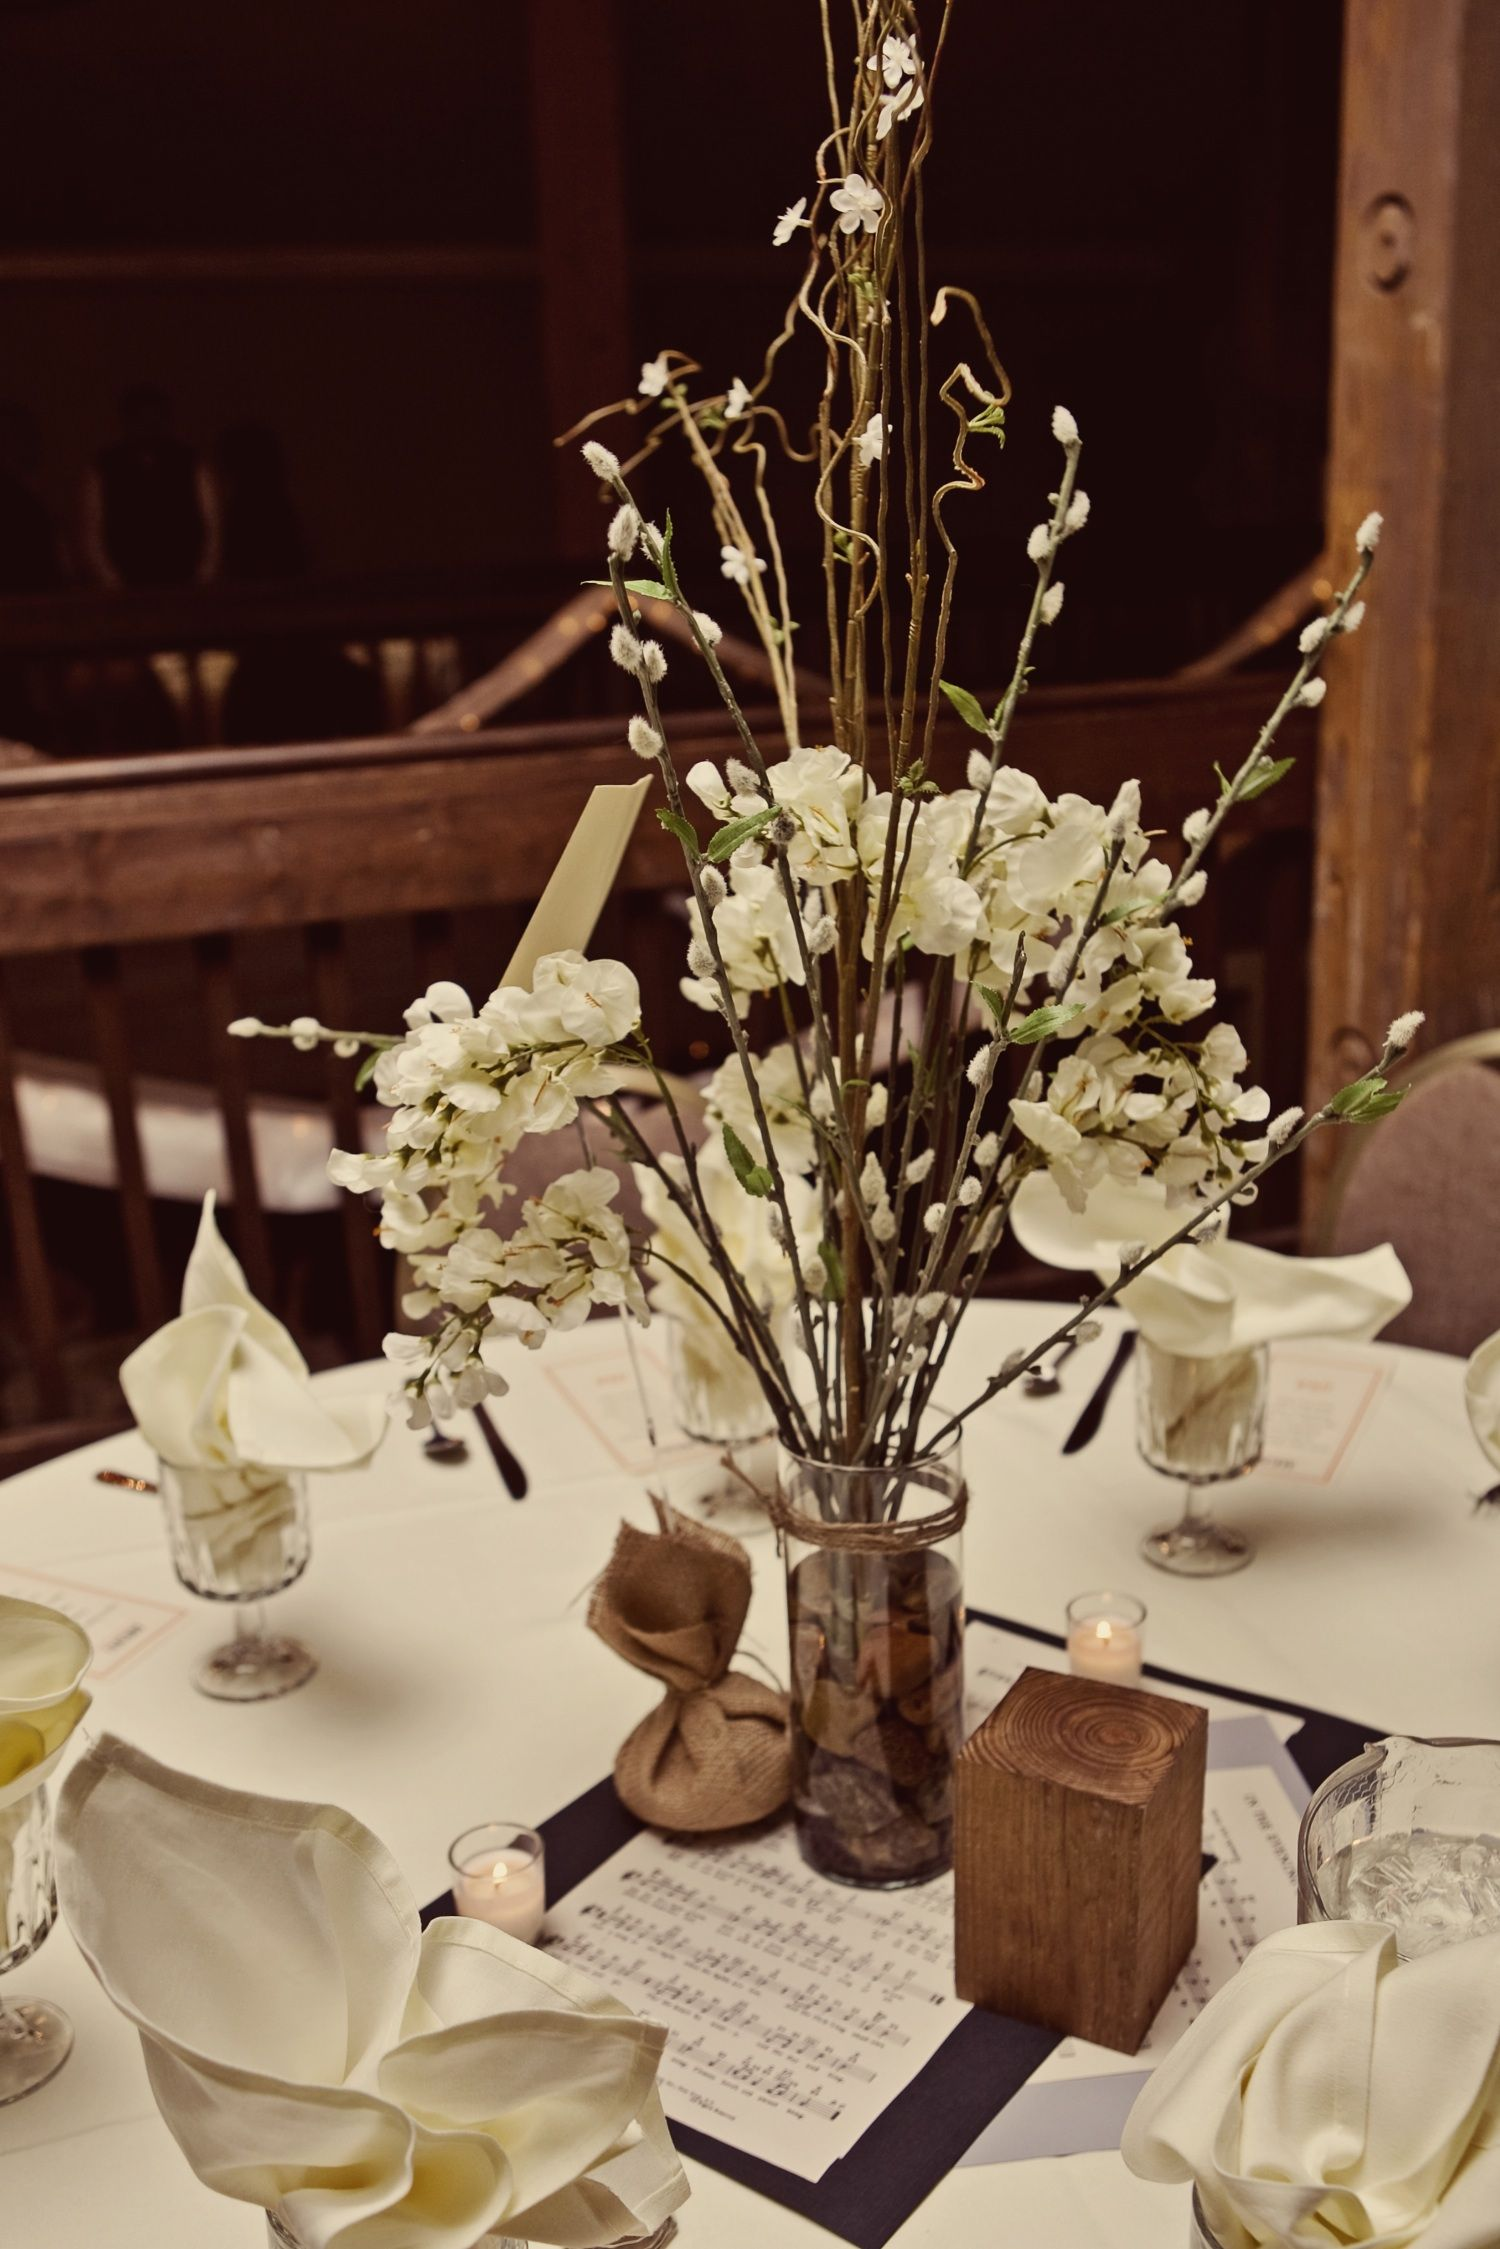 Real kansas city wedding with ivory wedding flowers and rustic real kansas city wedding with ivory wedding flowers and rustic reception decor junglespirit Image collections